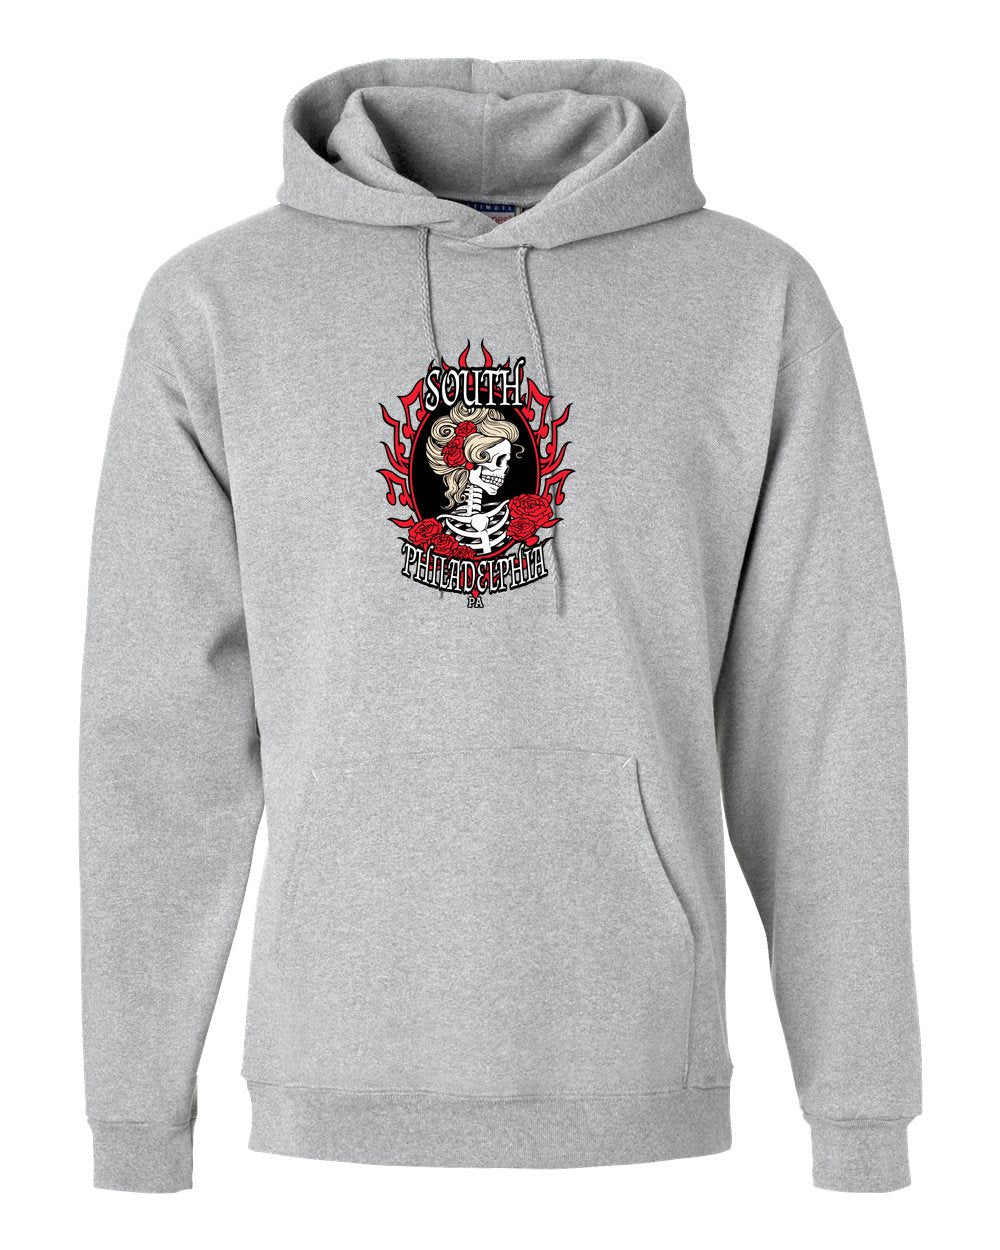 South Philly Dead Hoodie